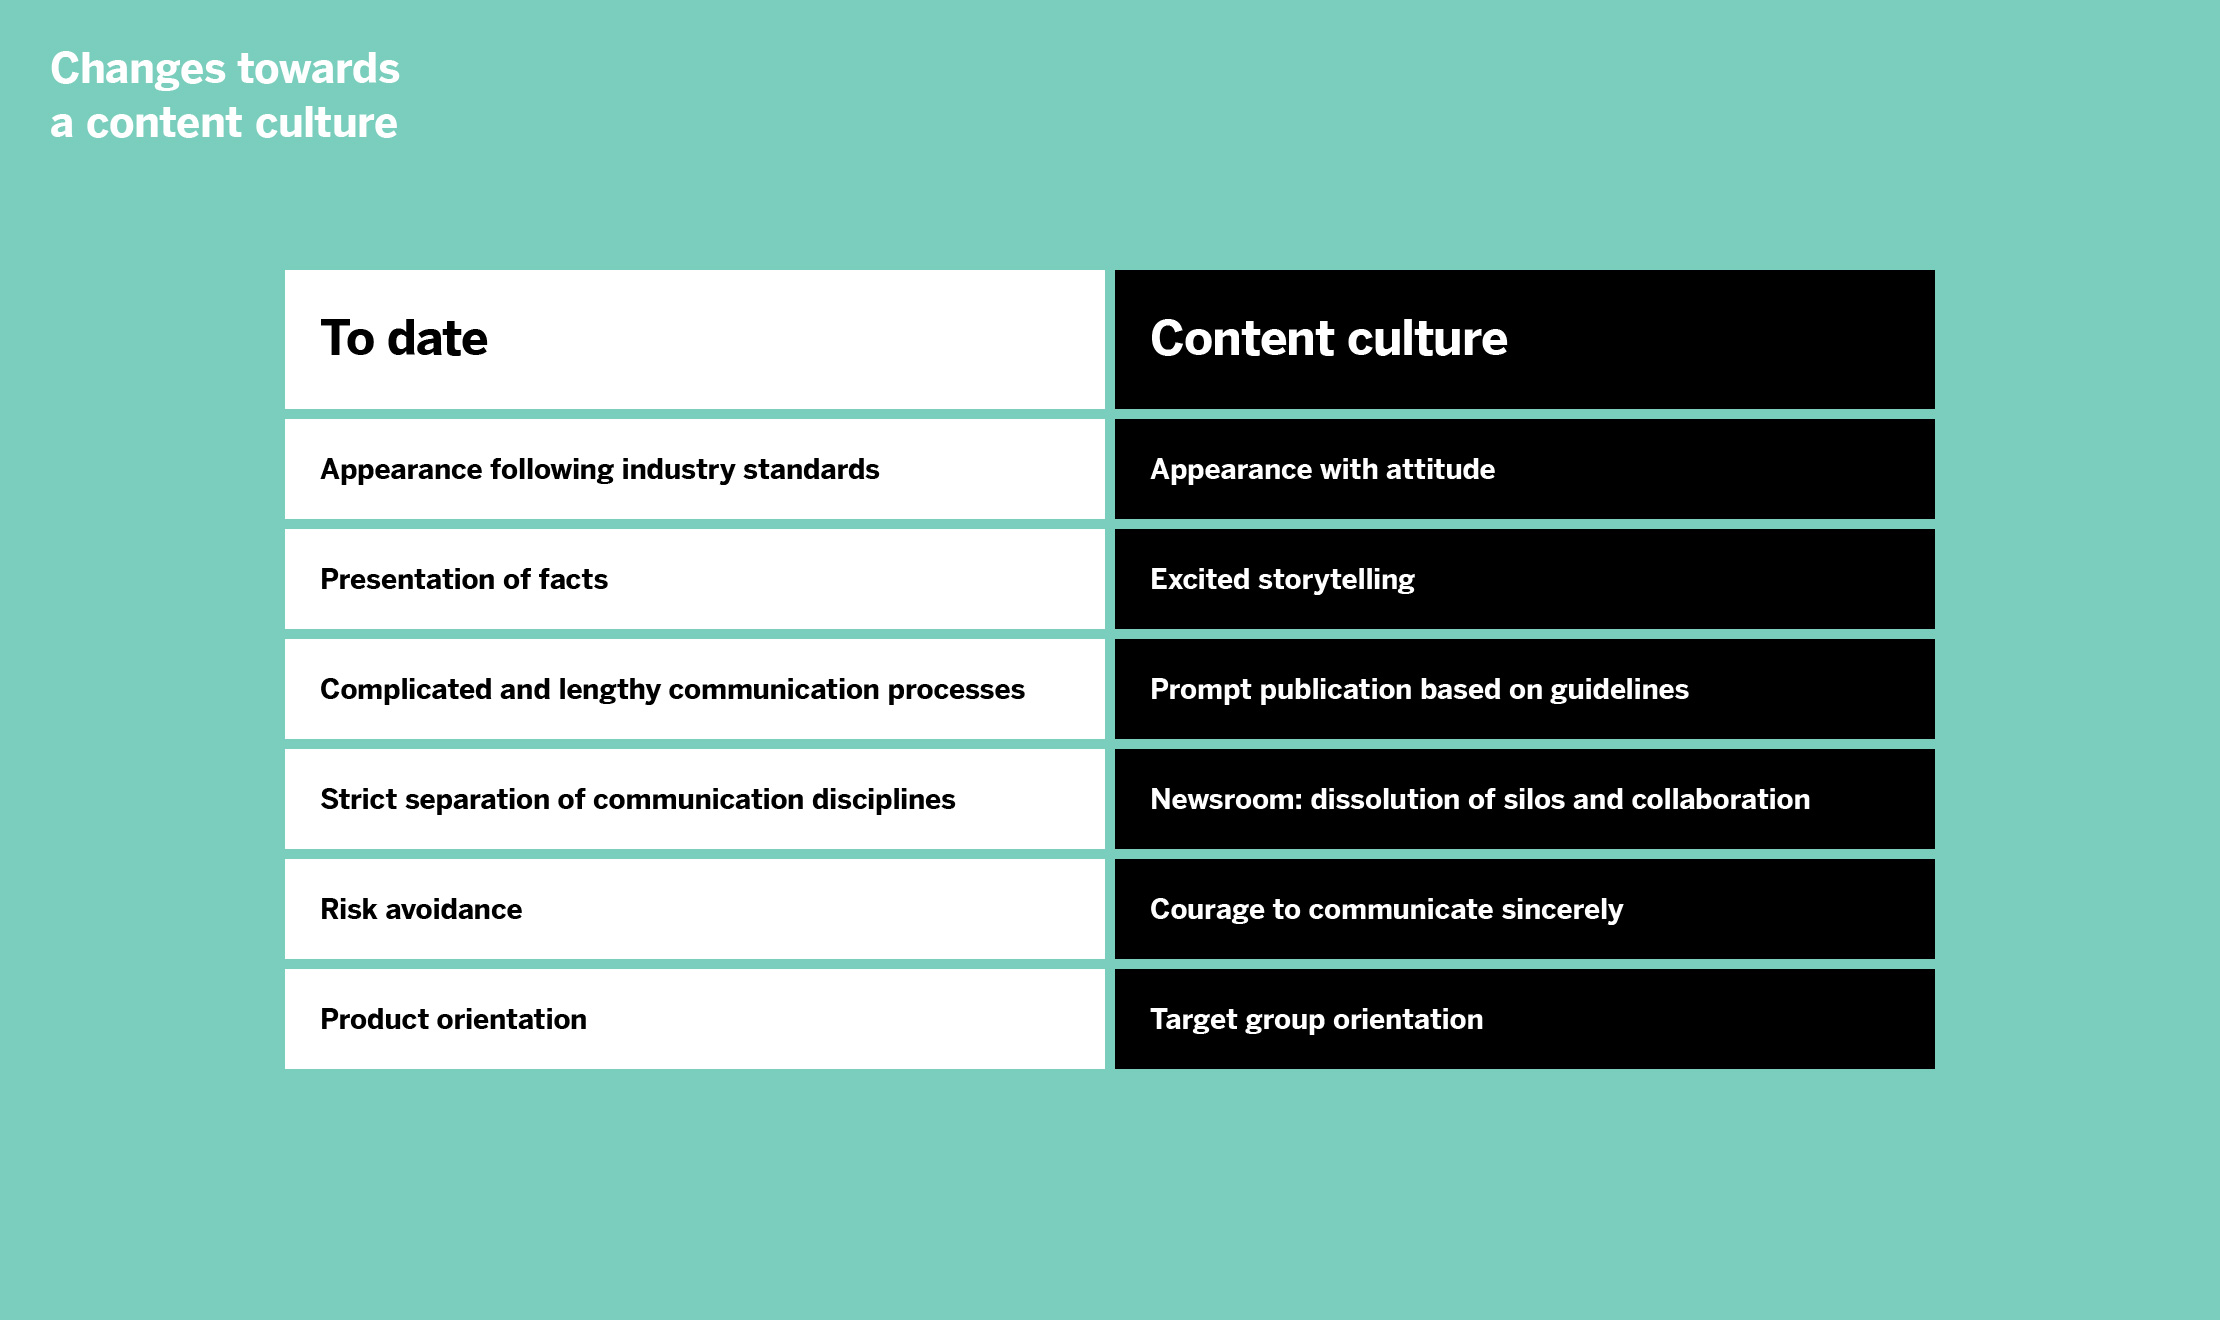 content-culture-graphic-01-changes